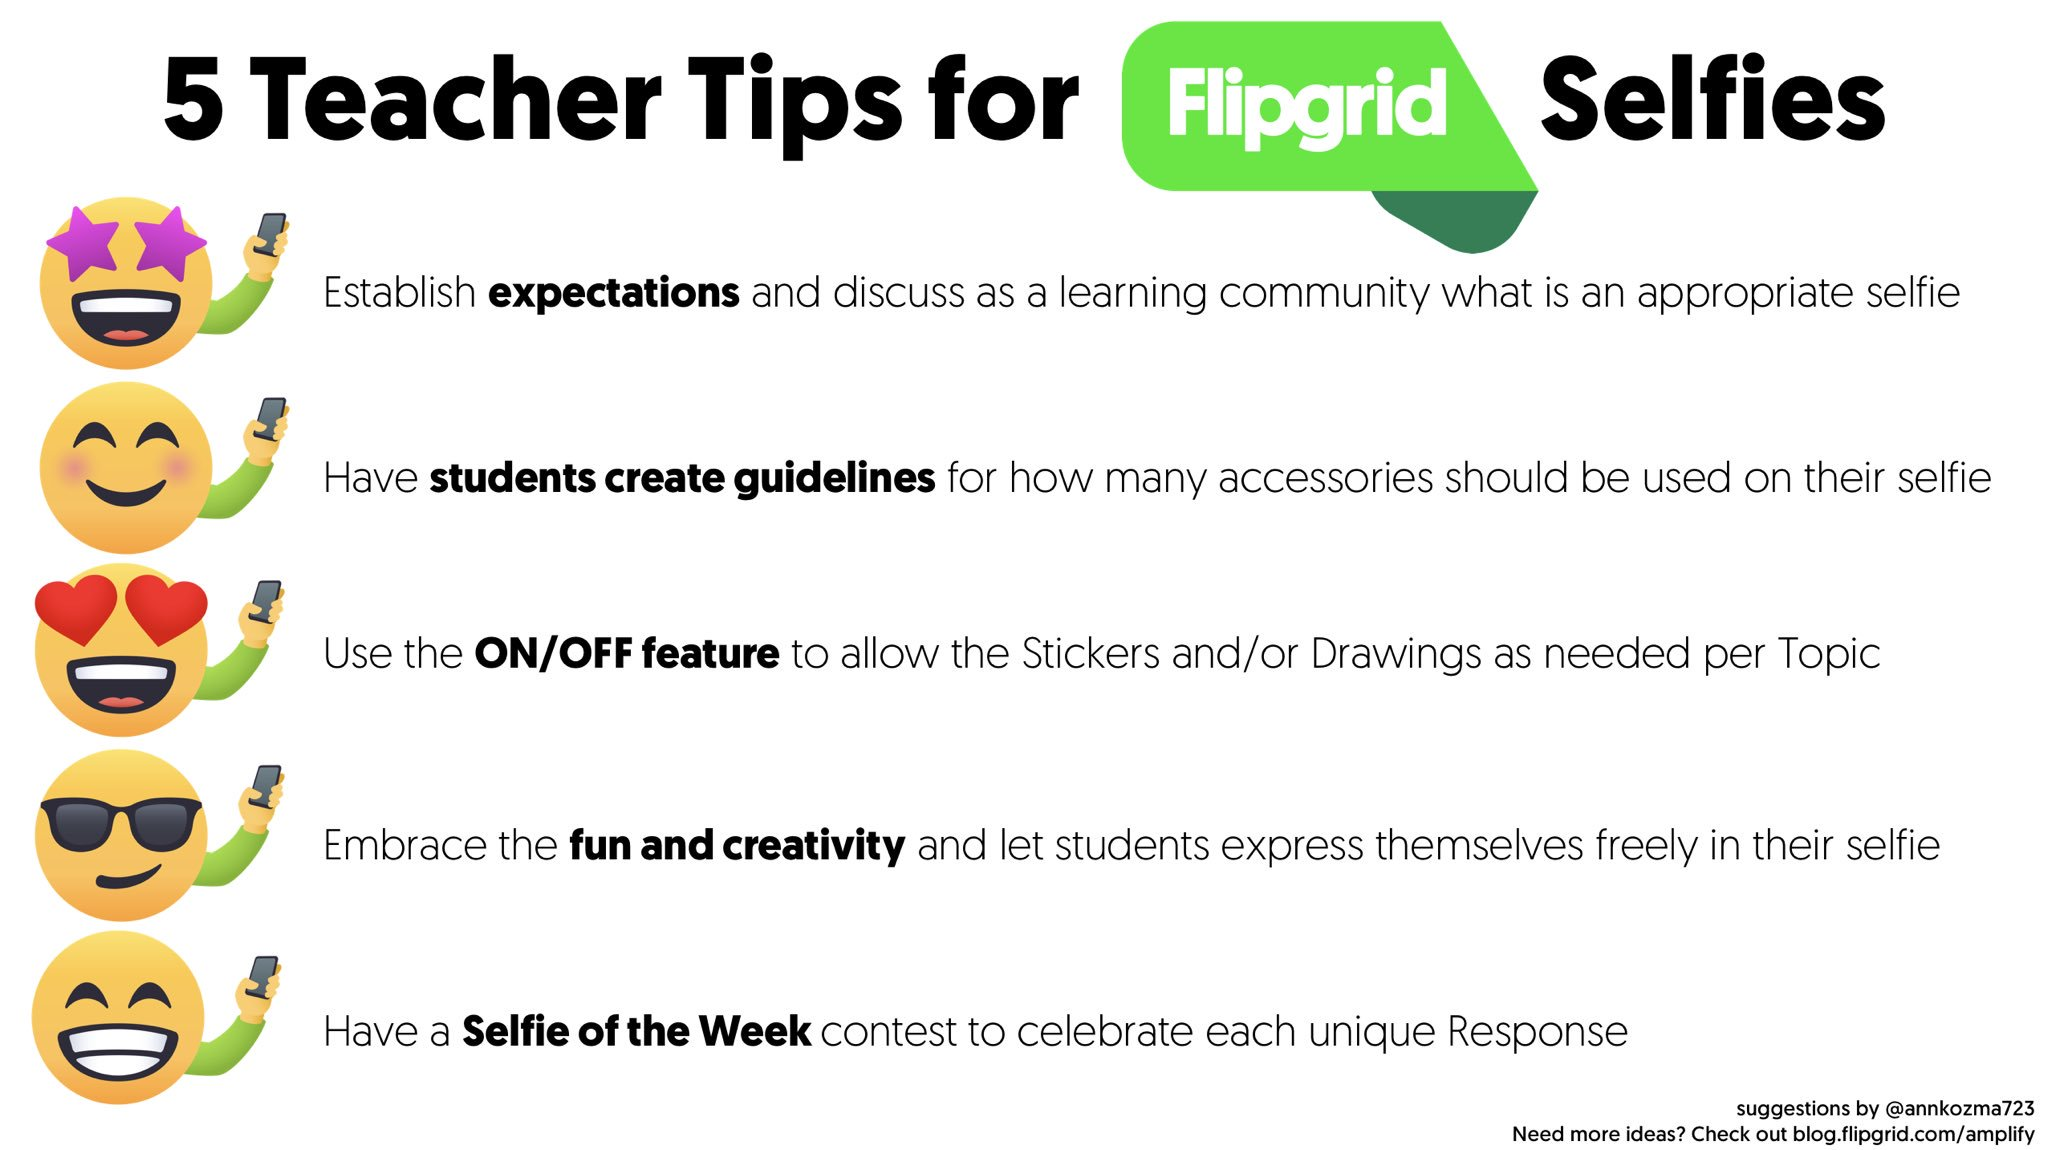 5TeacherTipsForFlipgridSelfies